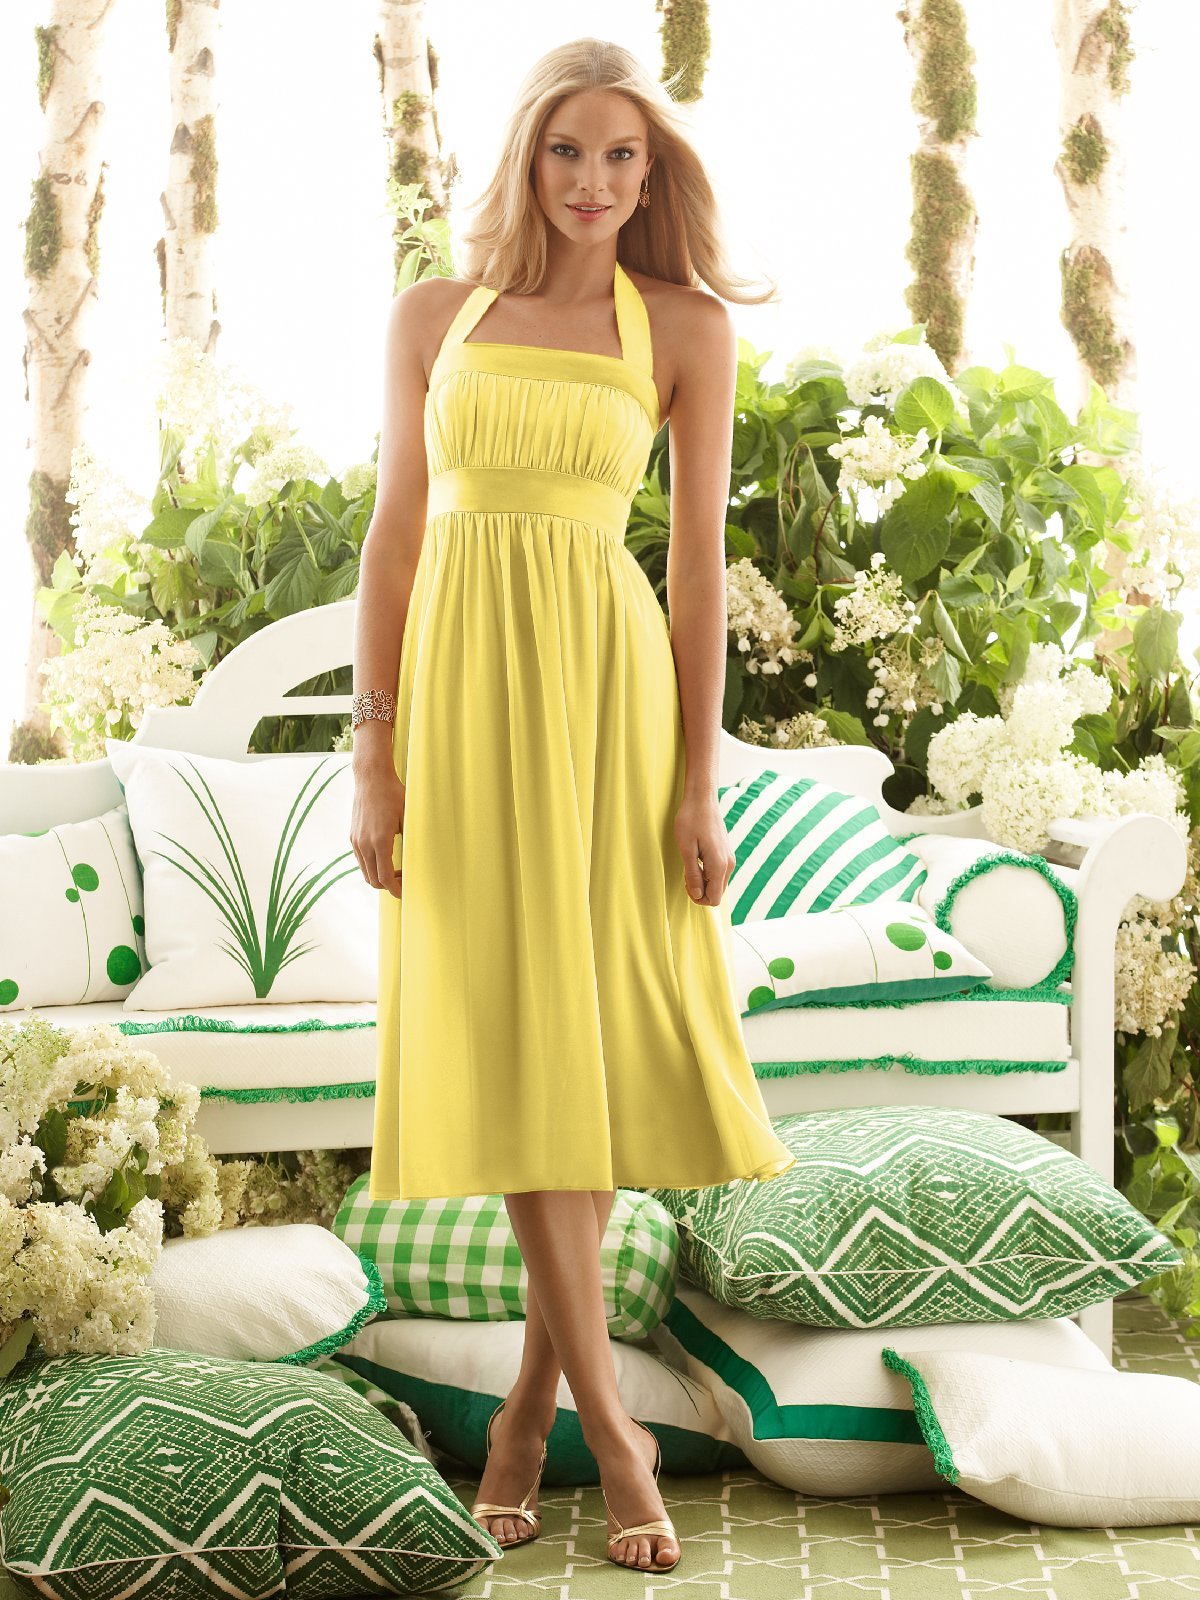 2a0a84a7338 Yellow Homecoming Dresses Under 100 - Gomes Weine AG